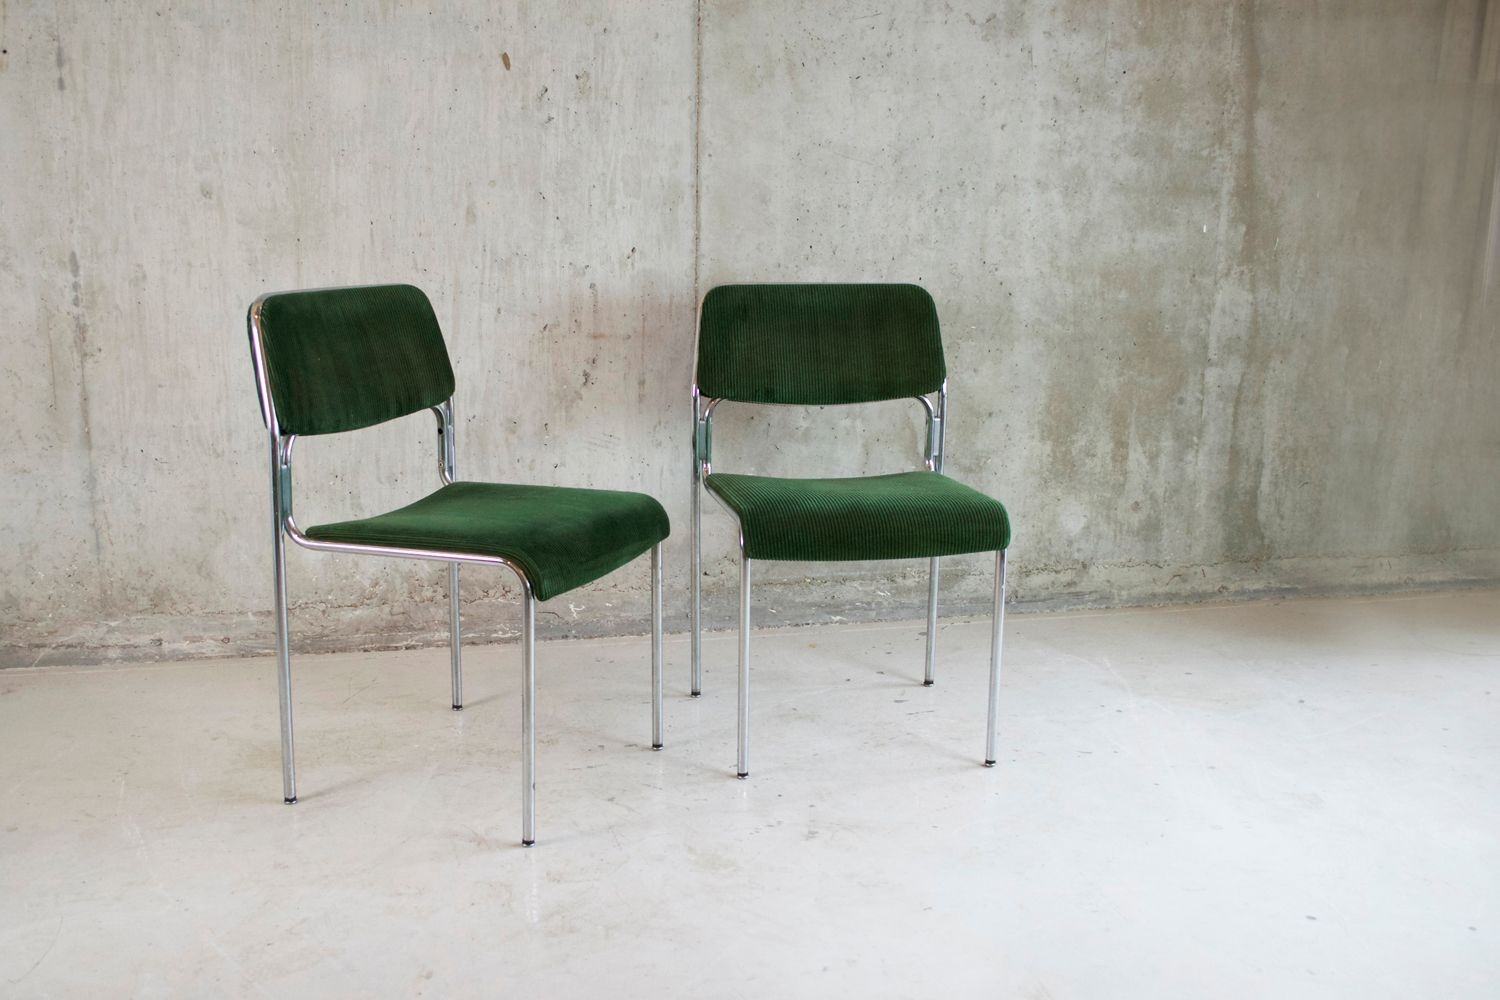 german green corduroy office chairs 1970s set of 2 for sale at